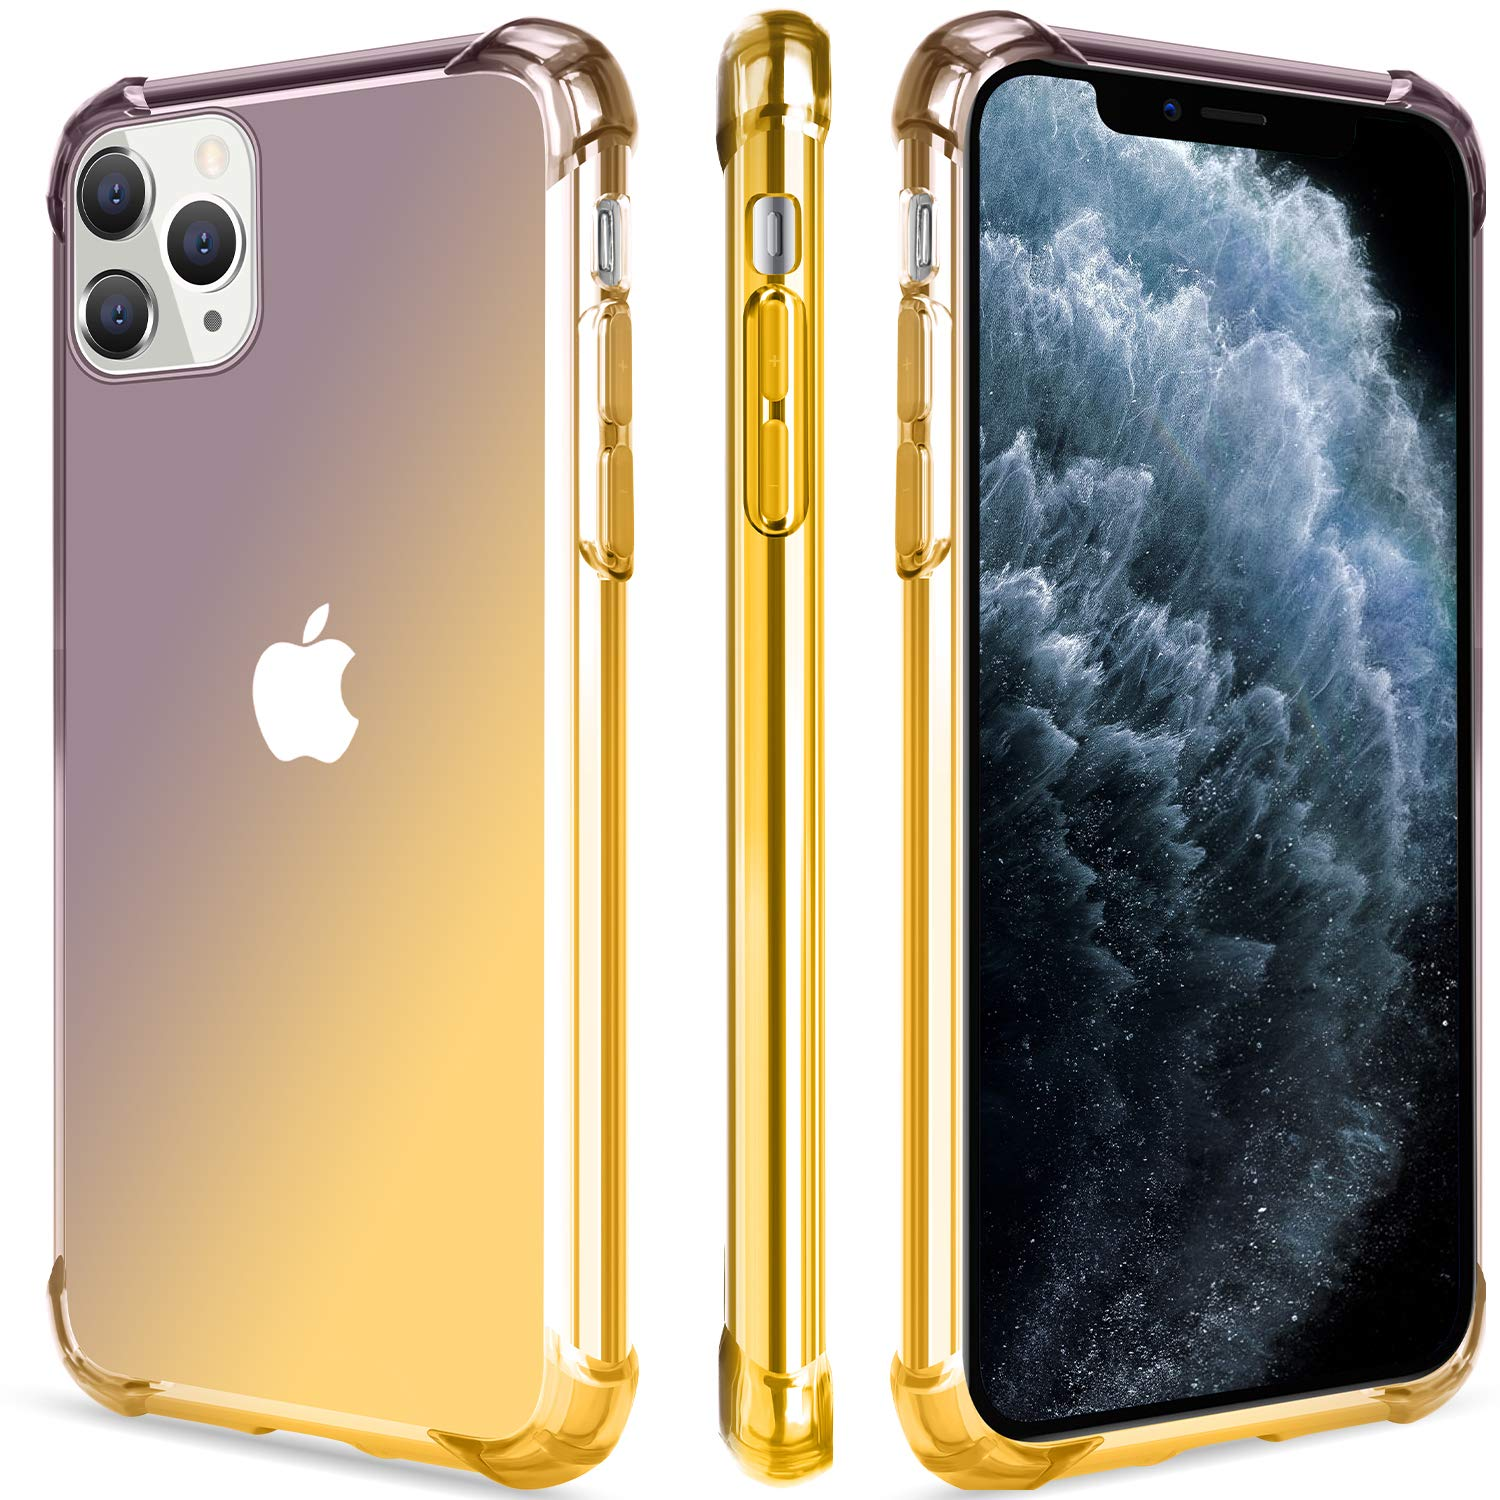 Salawat for iPhone 11 Pro Max Case, Clear Cute Gradient iPhone 11 Pro Max Phone Case Slim Thin Anti Scratch TPU Cover Shockproof Protective Case for iPhone 11 Pro Max 6.5 Inch 2019 (Black Gold)